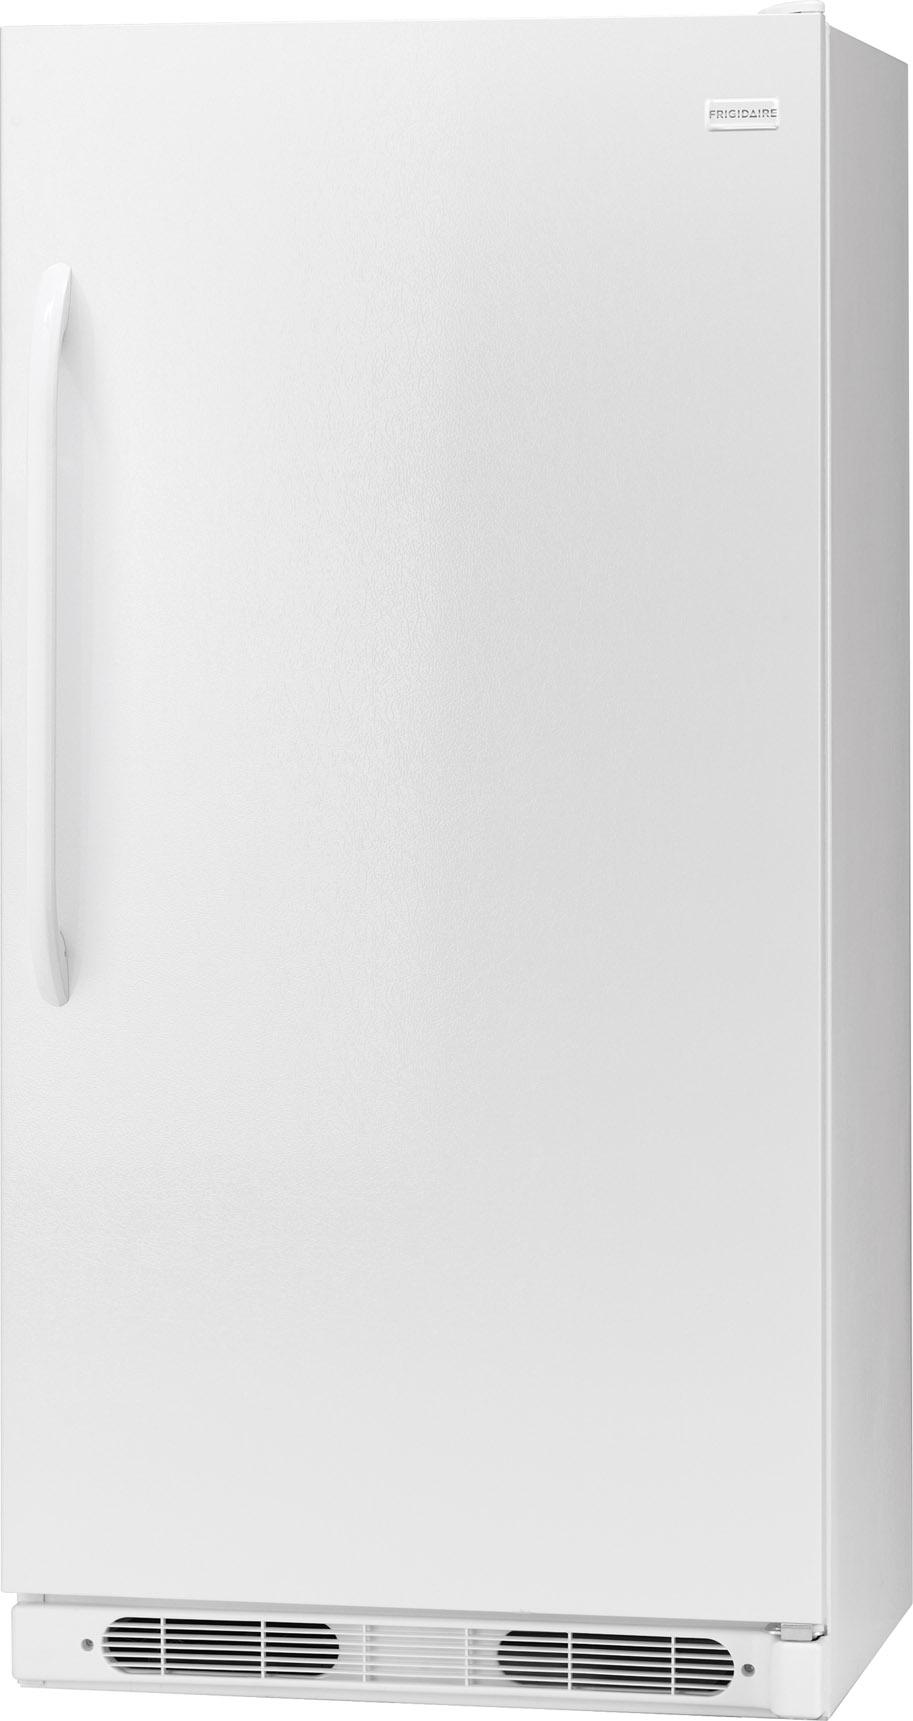 Frigidaire All Refrigerators 16.7 Cu. Ft. All Refrigerator - Item Number: FFRU17G8QW